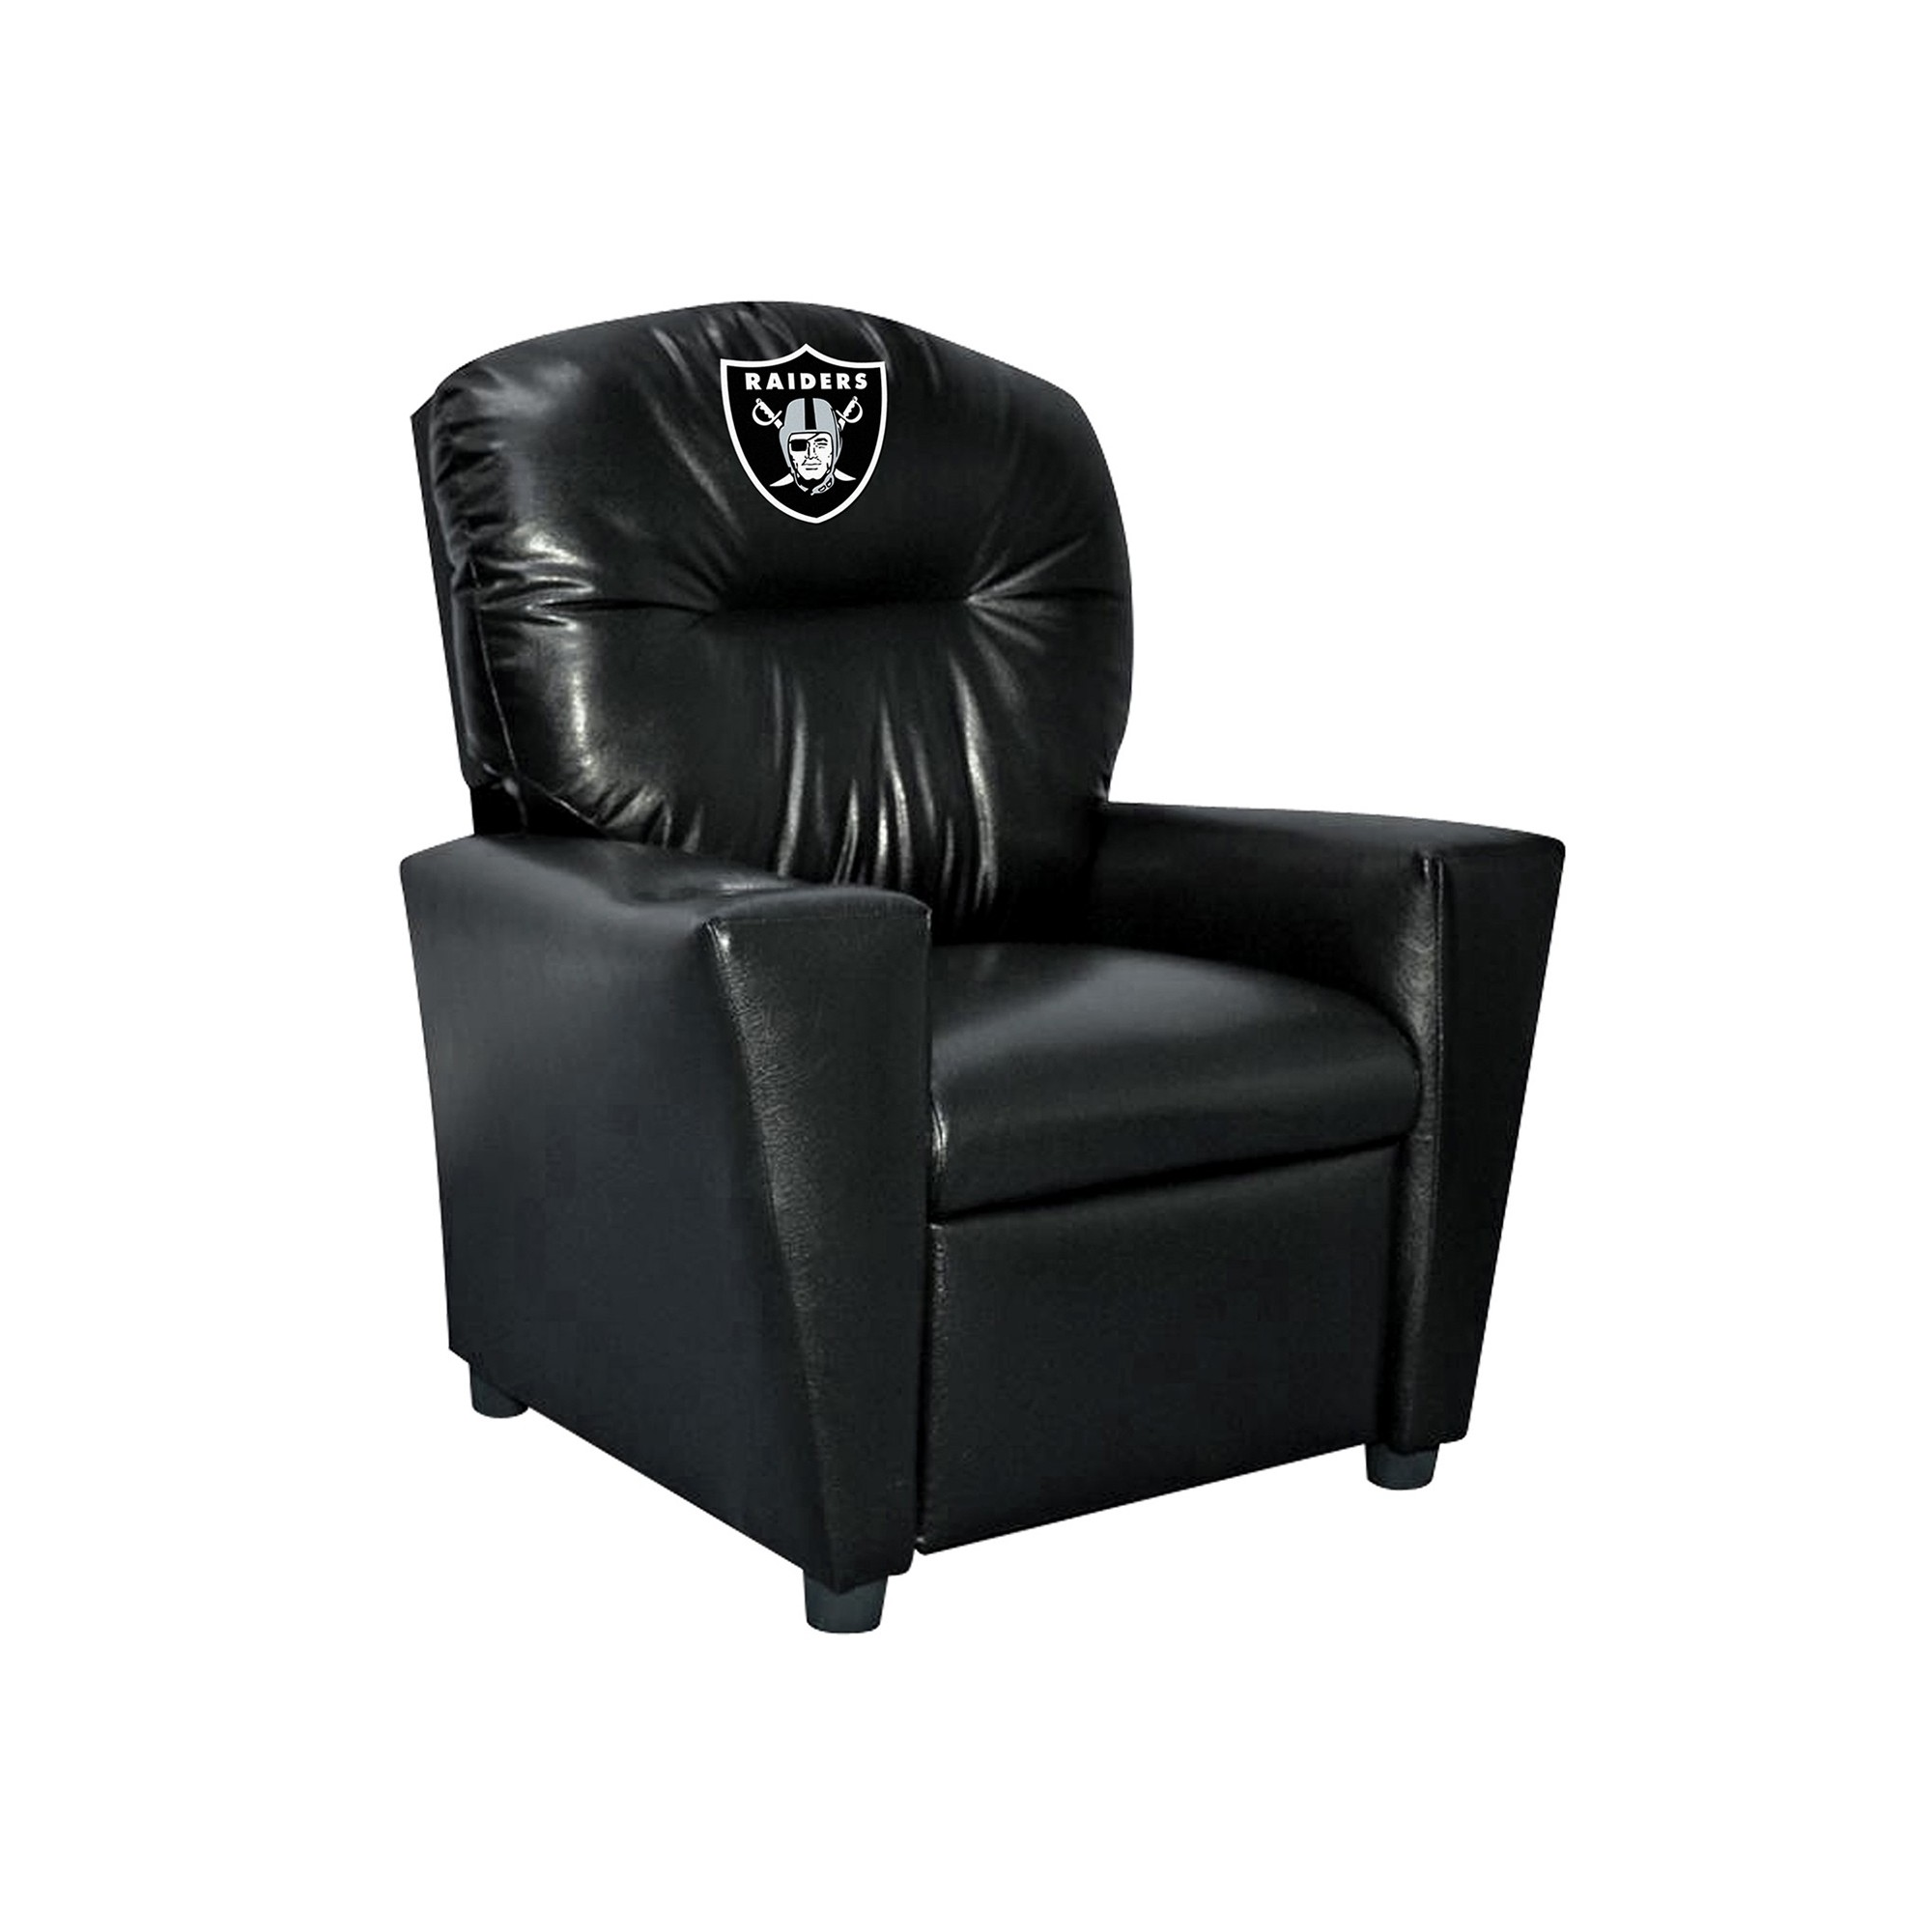 Oakland Raiders Kids Faux Leather Recliner - 107-1010 - Nfl Football Oakland Raiders Kids Dish Sets 107-1010